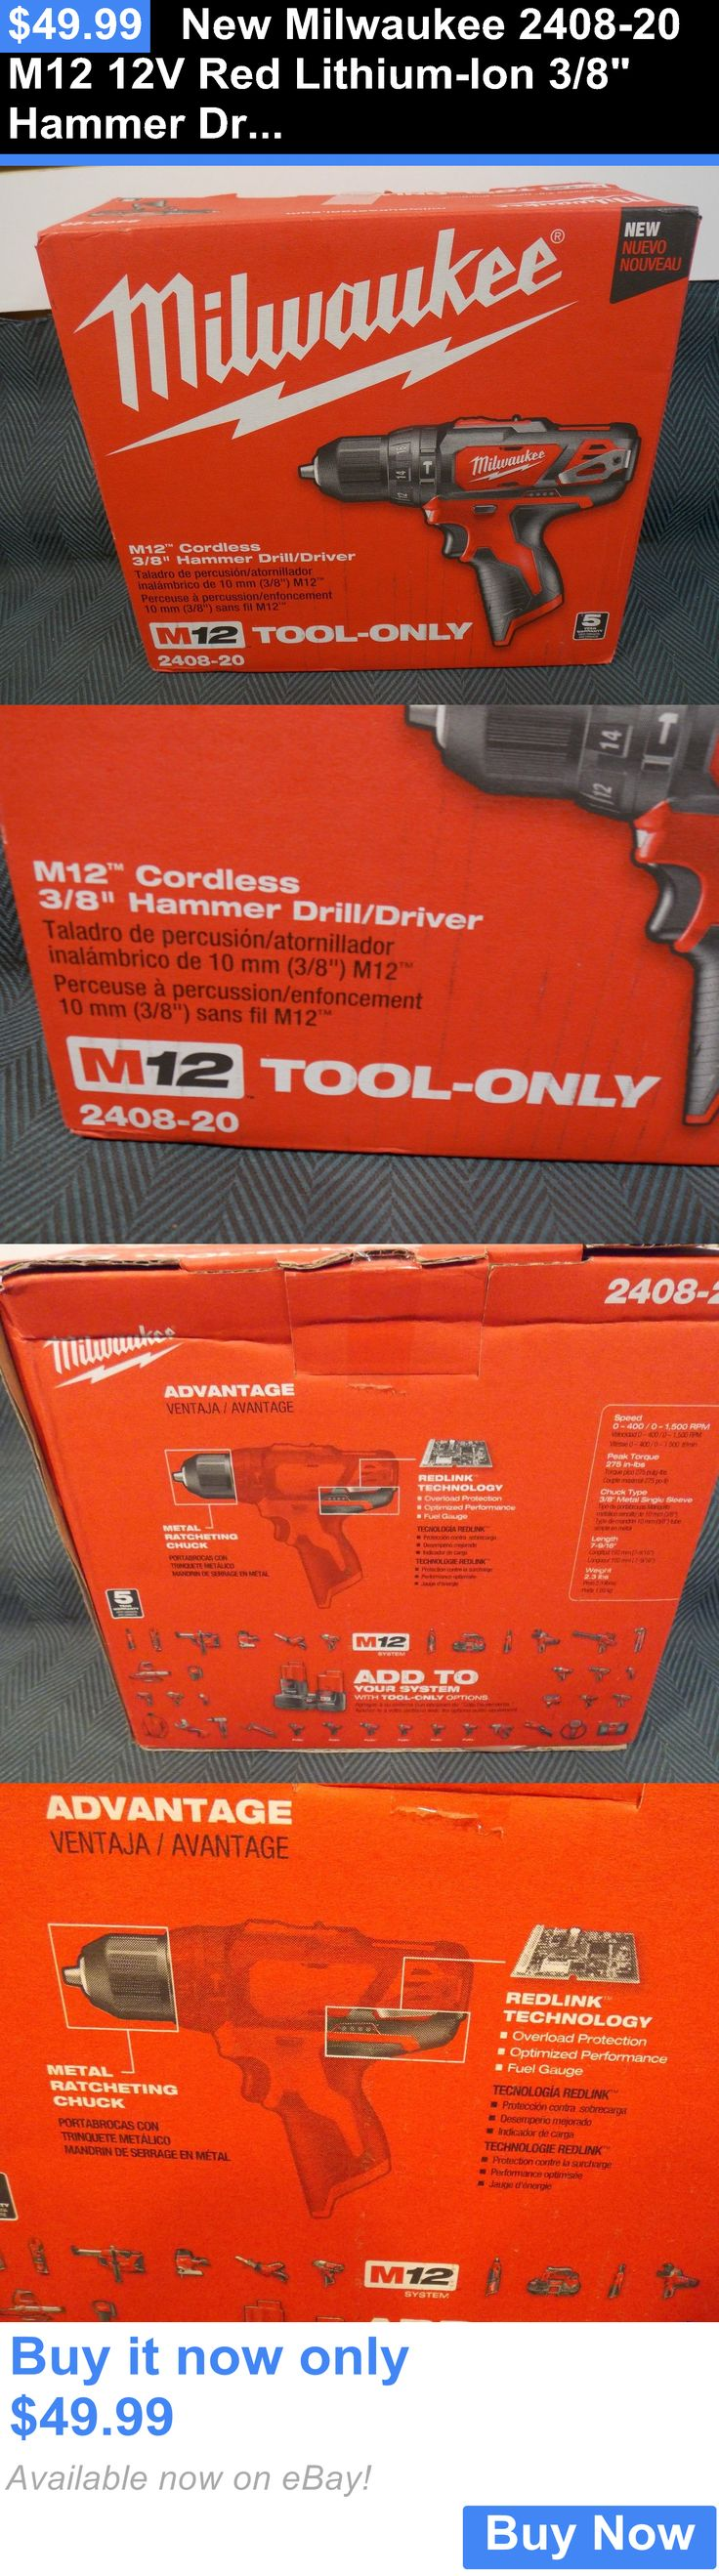 tools: New Milwaukee 2408-20 M12 12V Red Lithium-Ion 3/8 Hammer Drill Driver Cordless BUY IT NOW ONLY: $49.99